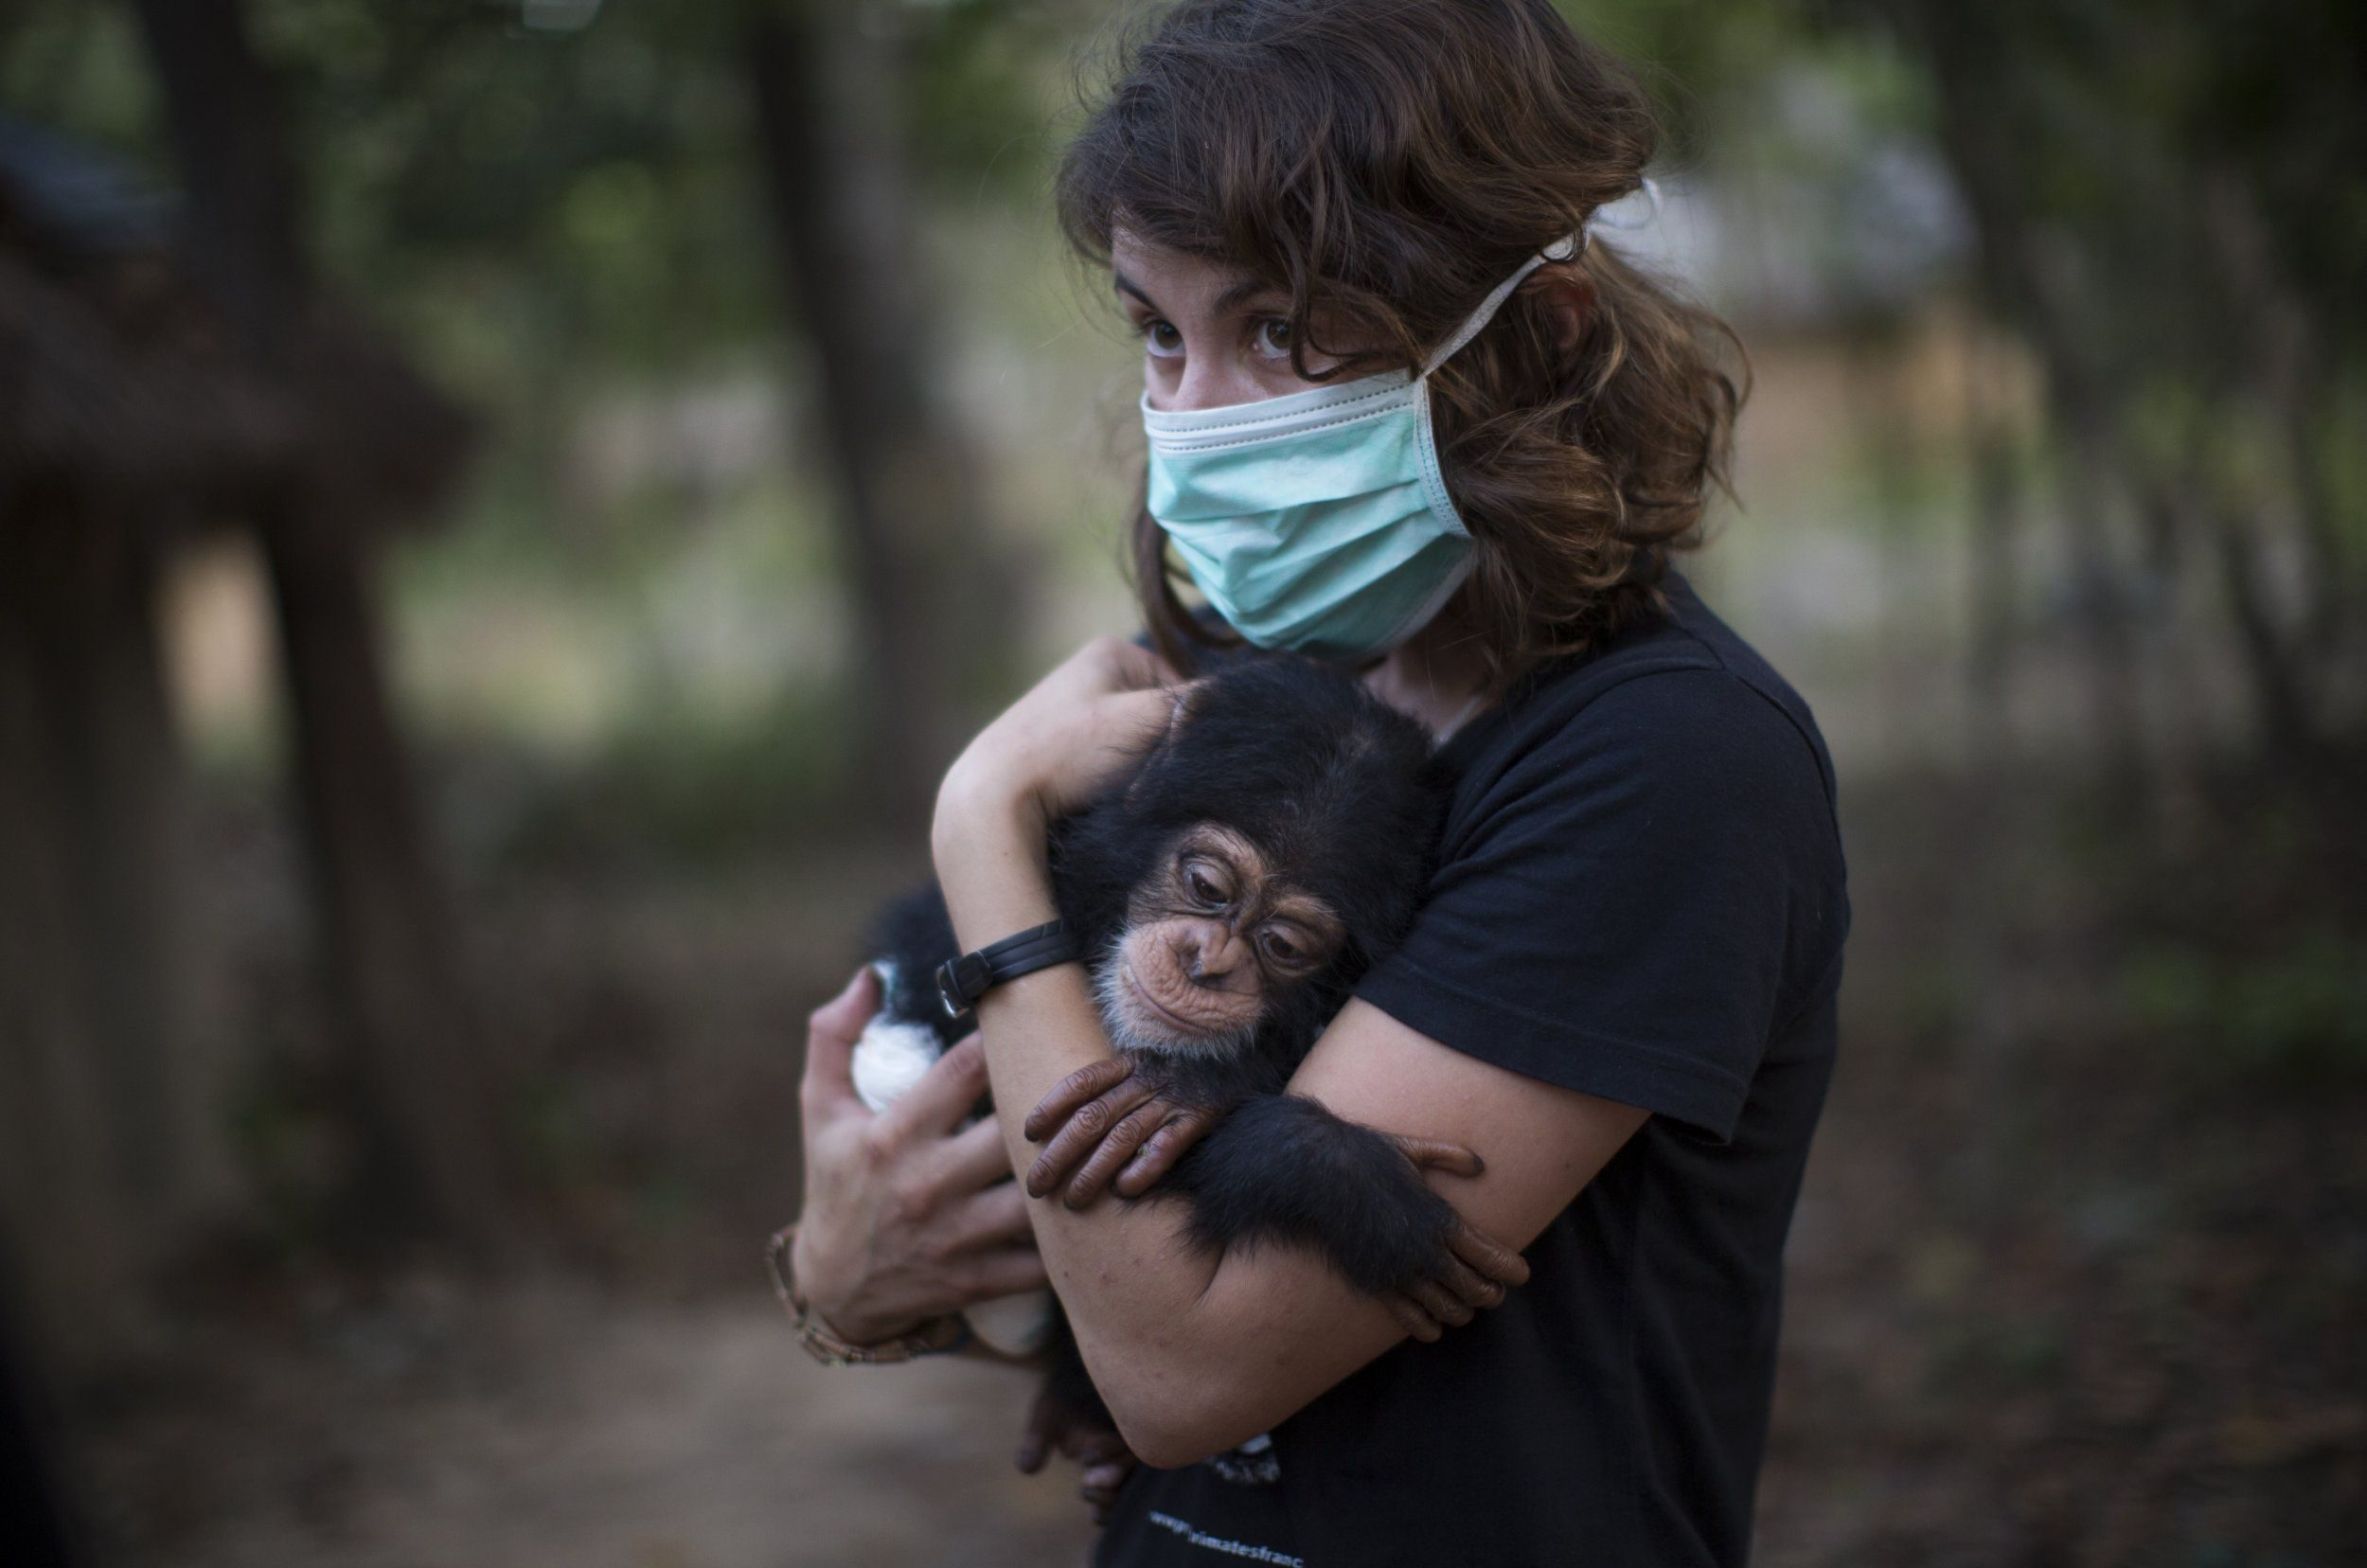 SOMORIA, GUINEA - NOVEMBER 26: French volunteer Audrey Lenormand, 27, holds ten month old Soumba for the first time after being handed him by GALF, at the Chimpanzee Conservation Centre, (CCC) on November 26, 2015 in Somoria, Guinea. Soumba was recently rescued from traffickers by authorities and is the 50th baby Chimpanzee to arrive at the CCC. For the first three months he is cared for 24 hours a day by a volunteer quarantined away from other chimpanzees and staff. The CCC is a sanctuary and a rehabilitation centre for rescued orphaned chimpanzees and is supported in part by Project Primate, Inc., a US NGO. The centre is located on the Banks of the River Niger in the Haut Niger National Park in Guinea, West Africa and consists of around 6000 square km of Savannah and tropical dry forests. The CCC currently looks after 50 Western Chimpanzees, one of the most endangered sub species of chimpanzee. Most of the animals were orphaned and subsequently rescued after being taken as babies in the wild from their family groups. According to the Great Apes Survival Partnership, (GRASP), for every young Chimpanzee rescued, around 10 of its family members will have likely been killed in the process. The centre rehabilitates and cares for the animals, and ultimately aims to release them back into the wild, a process that take over 10 years. The animals often suffer from physical and psychological damage, but with care, attention and compassion from the keepers and volunteers, the animals begin the long process of gaining independence and learning how to survive in the wild. As they develop they are slowly integrated back into larger family groups until they are ready for their eventual release when possible. (Photo by Dan Kitwood/Getty Images)